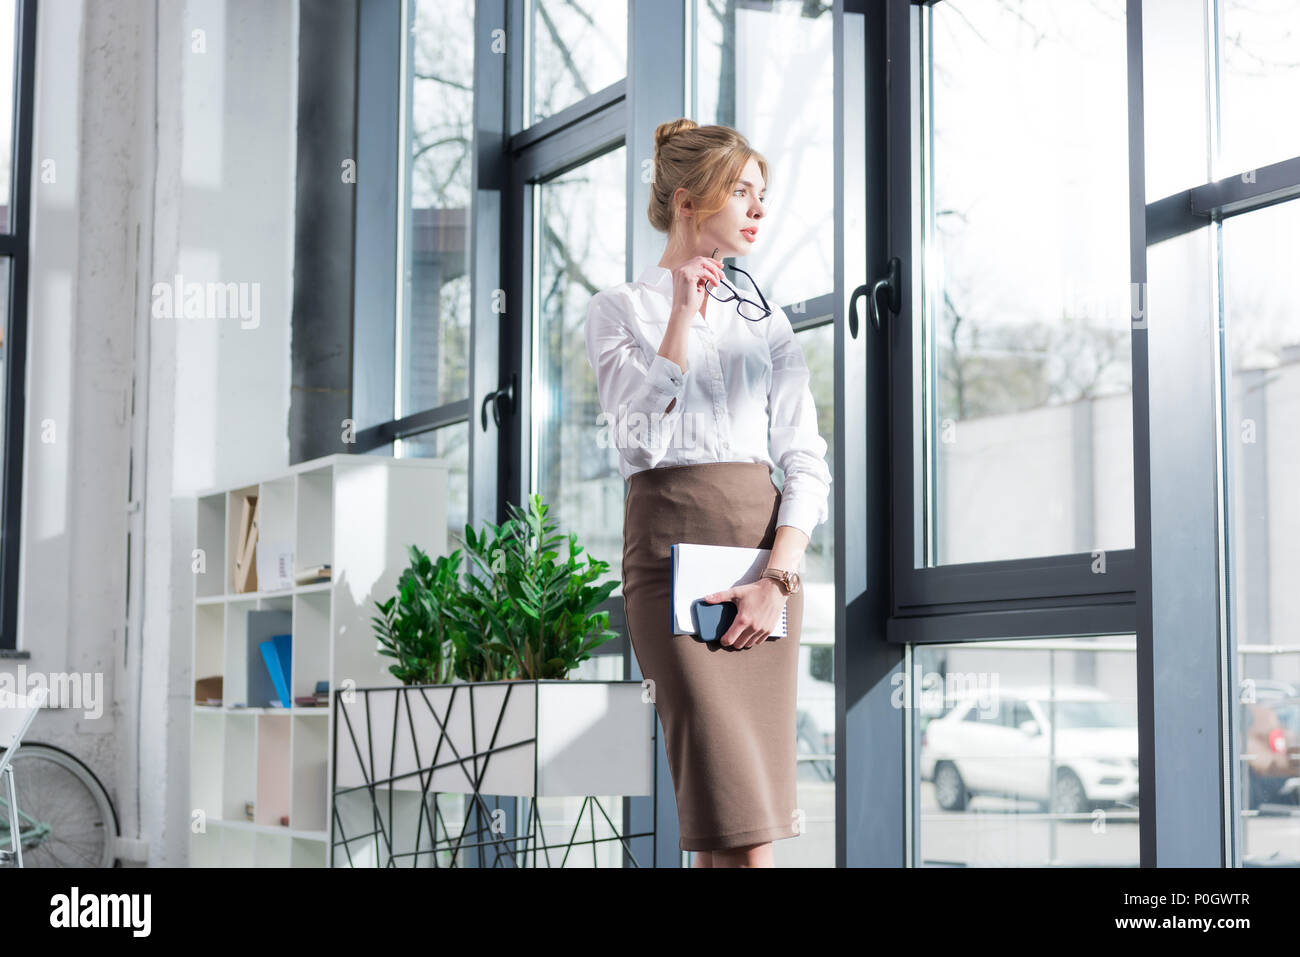 attractive blonde businesswoman in formal wear standing at window in modern office - Stock Image